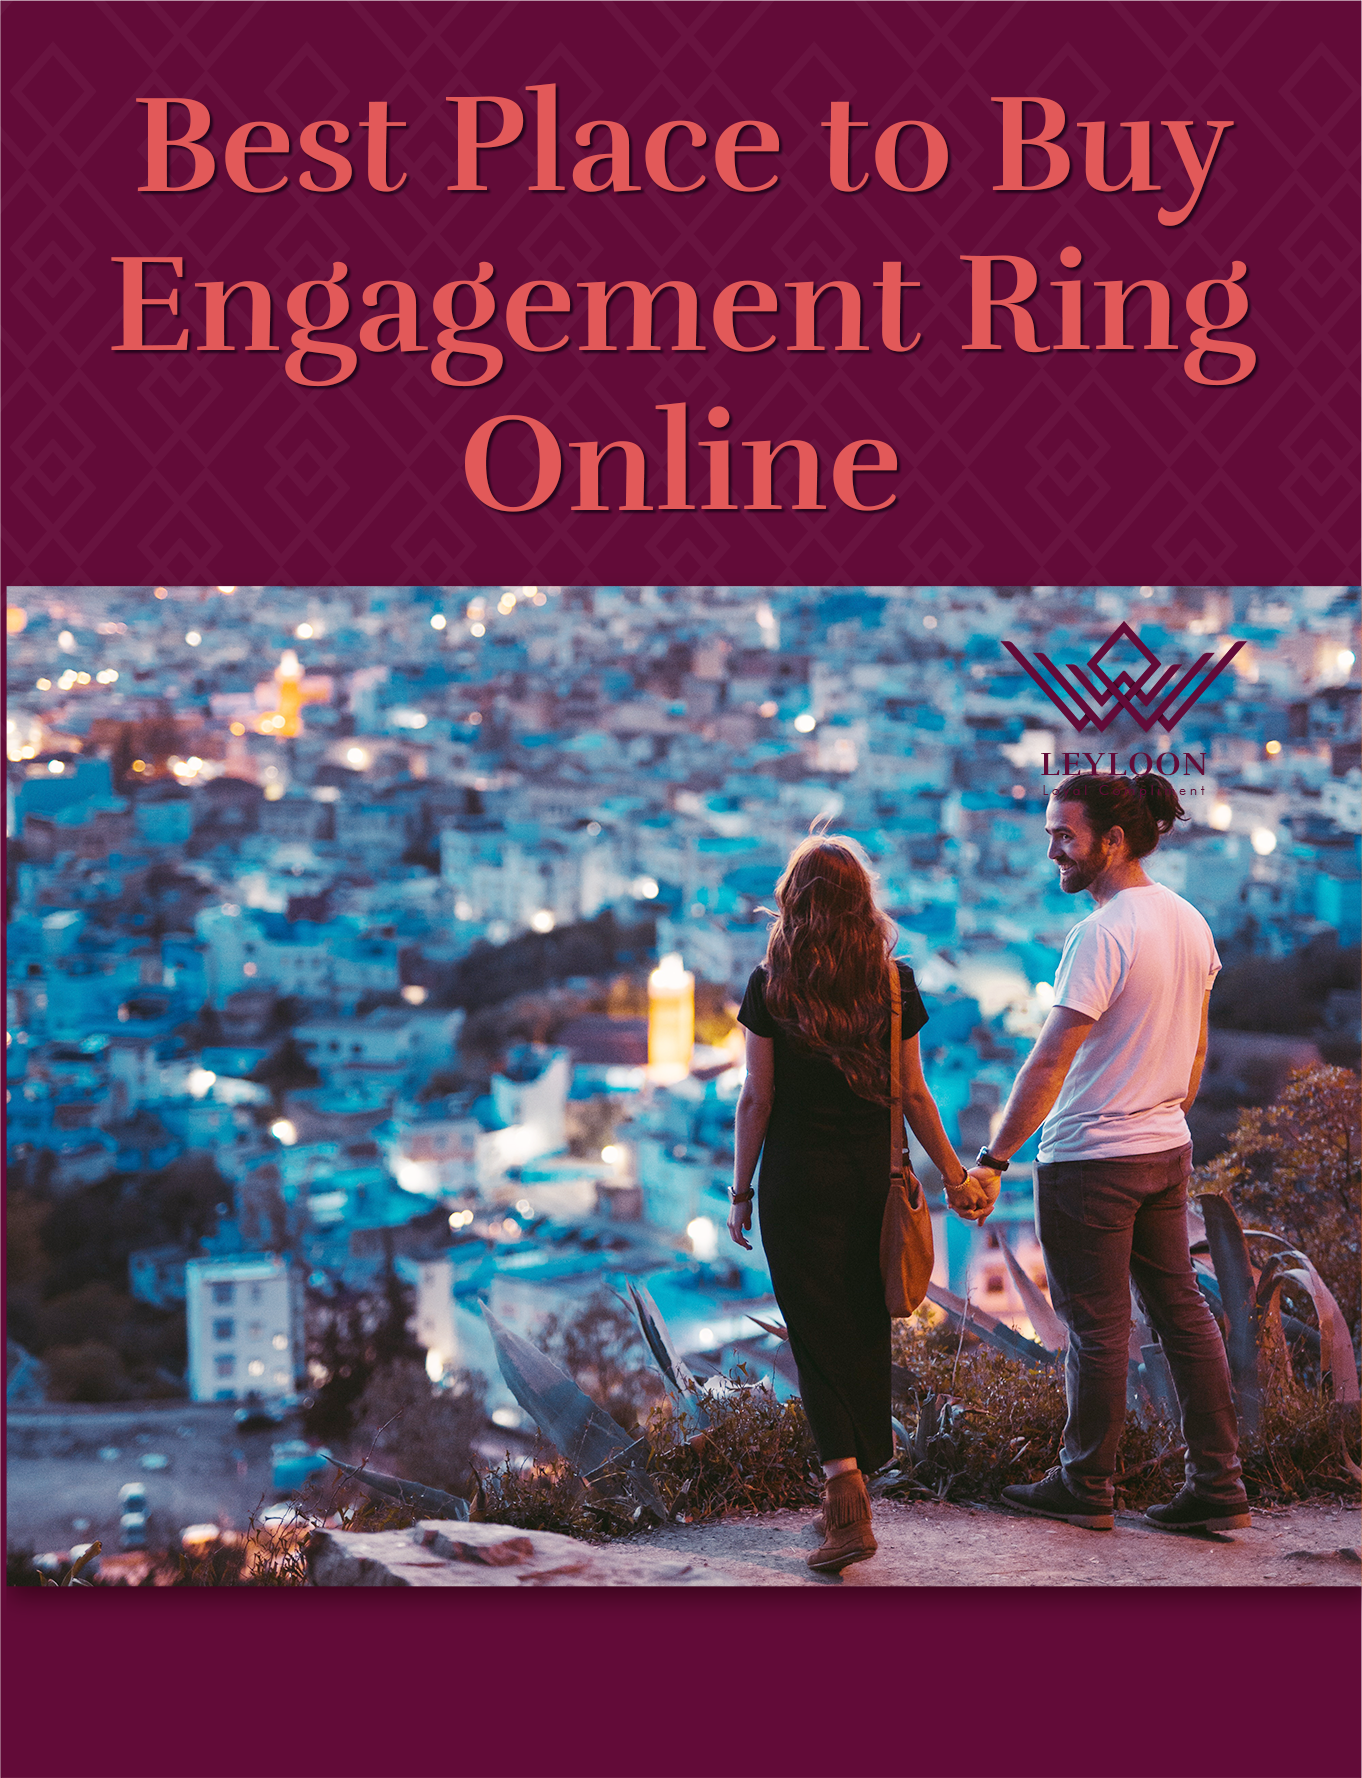 Best Place to Buy Engagement Ring Online